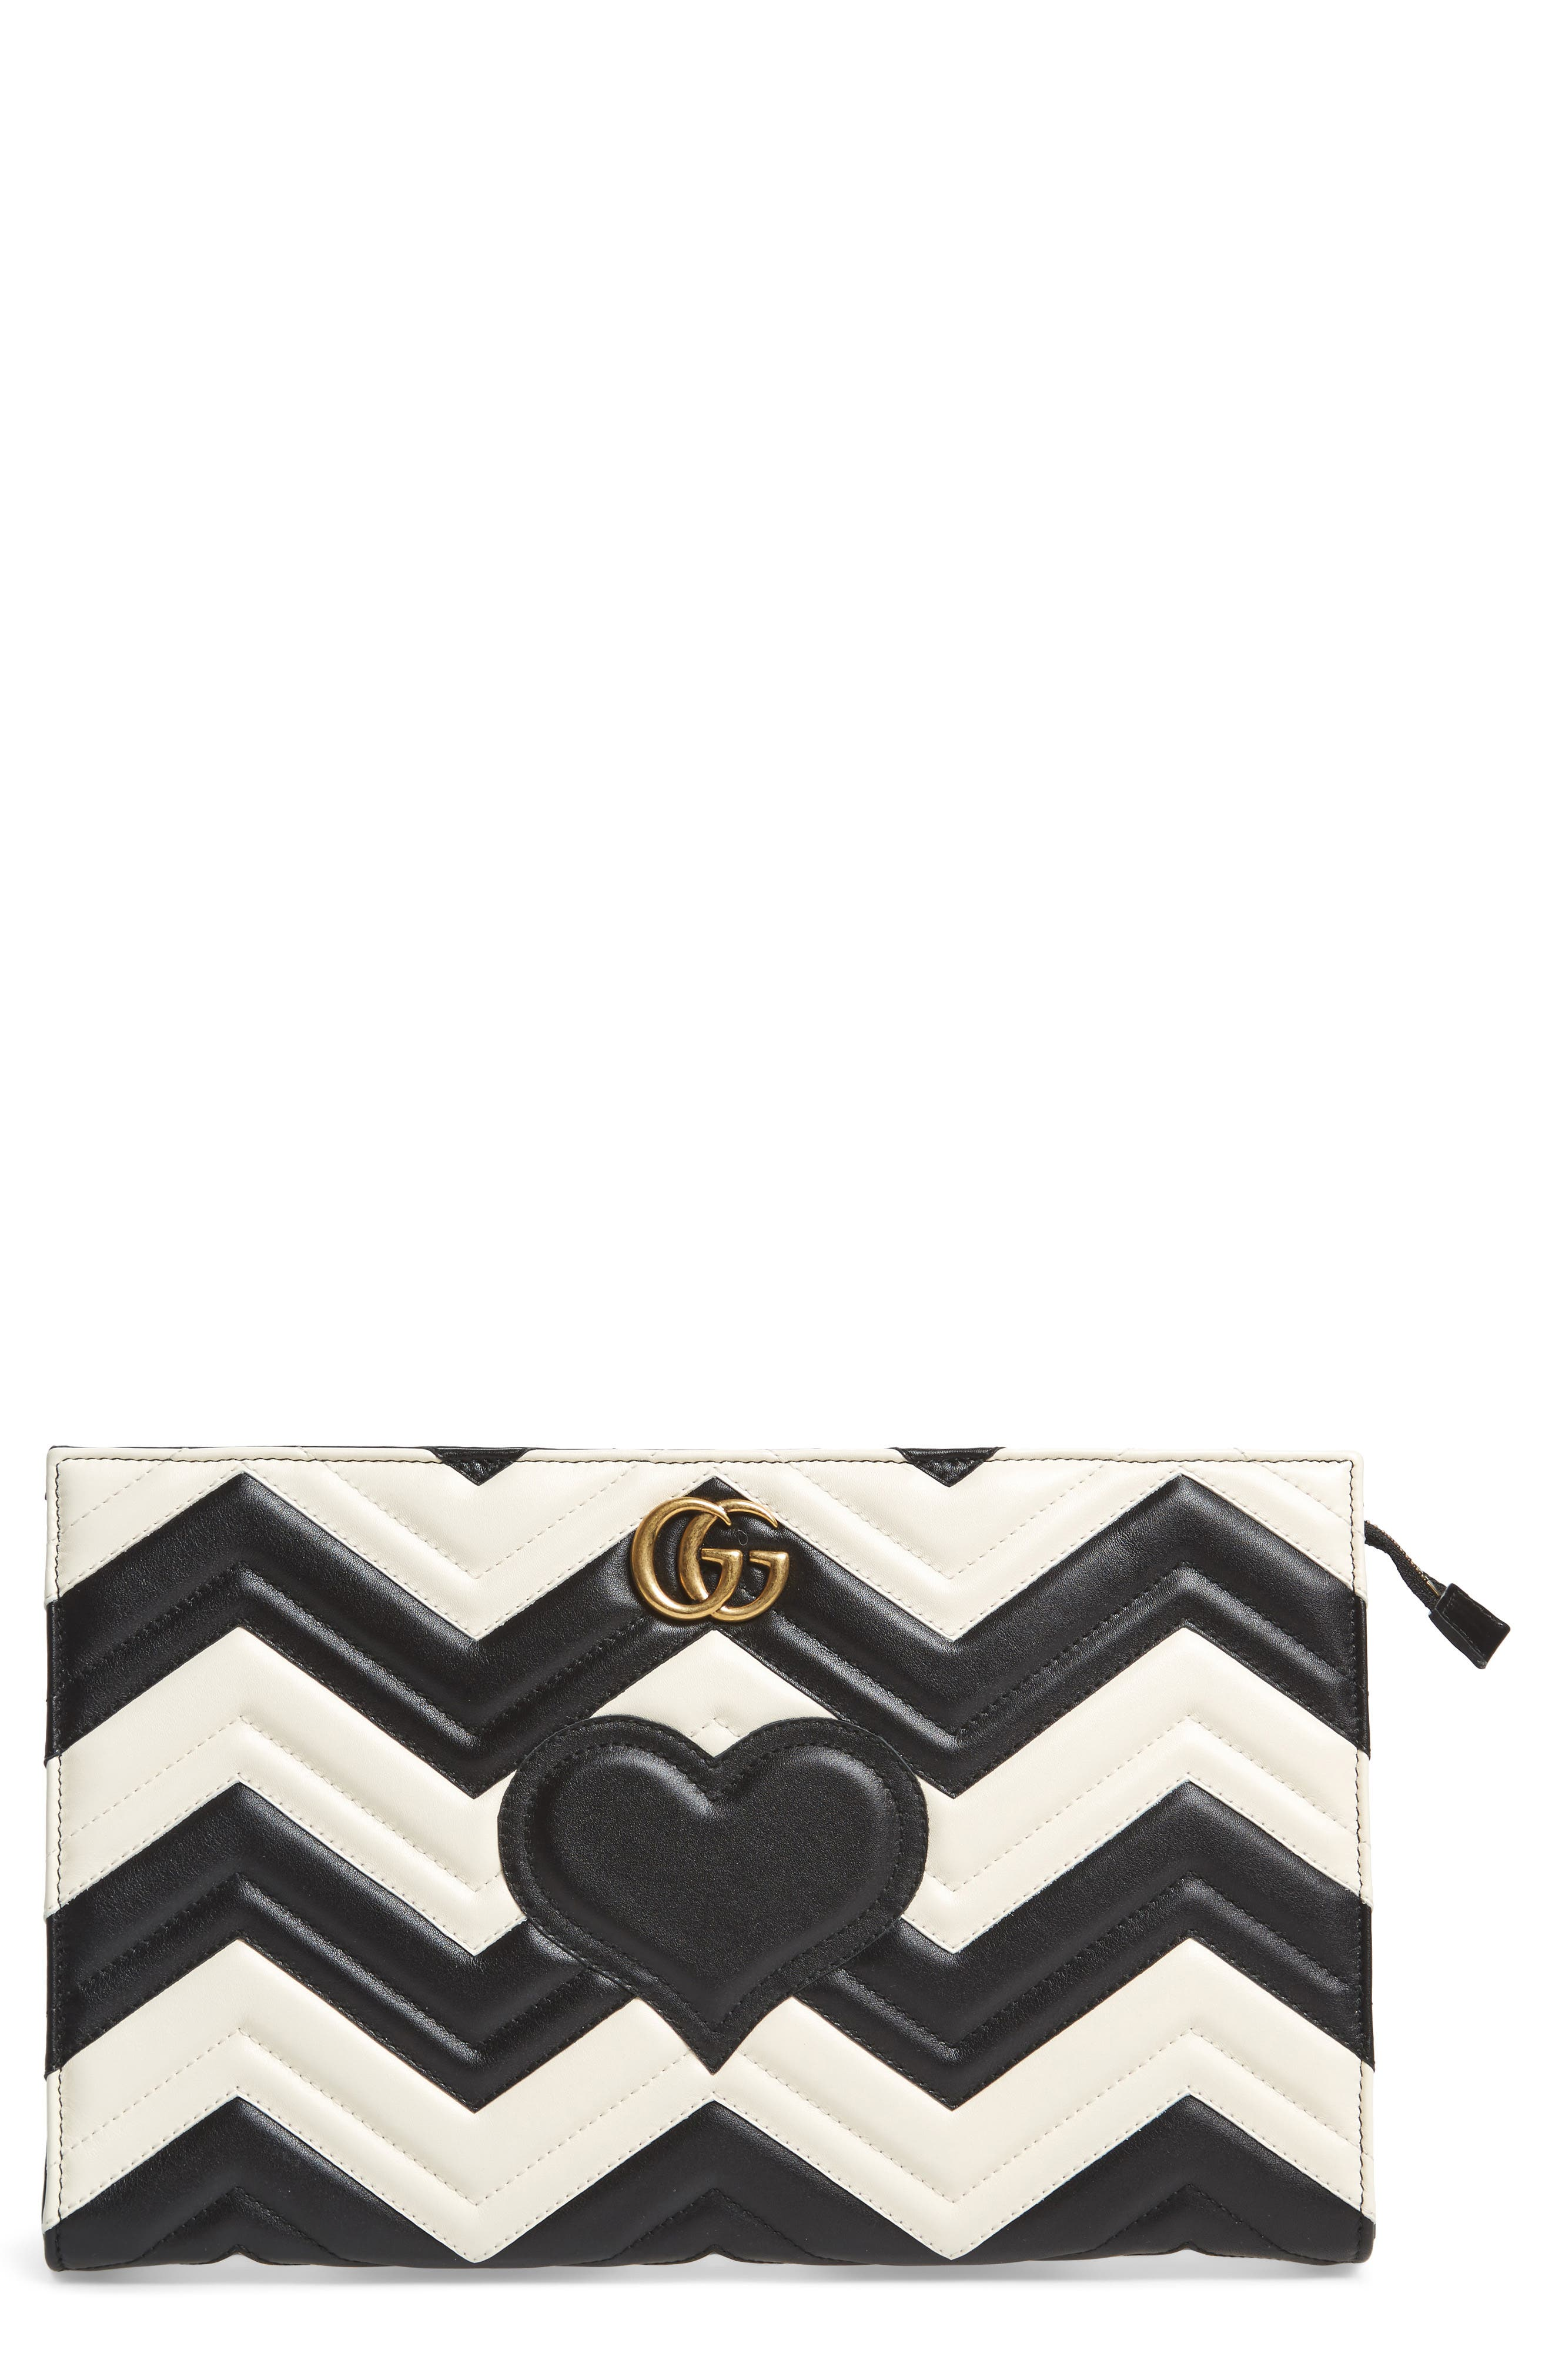 Gucci GG Marmont Matelassé Leather Clutch